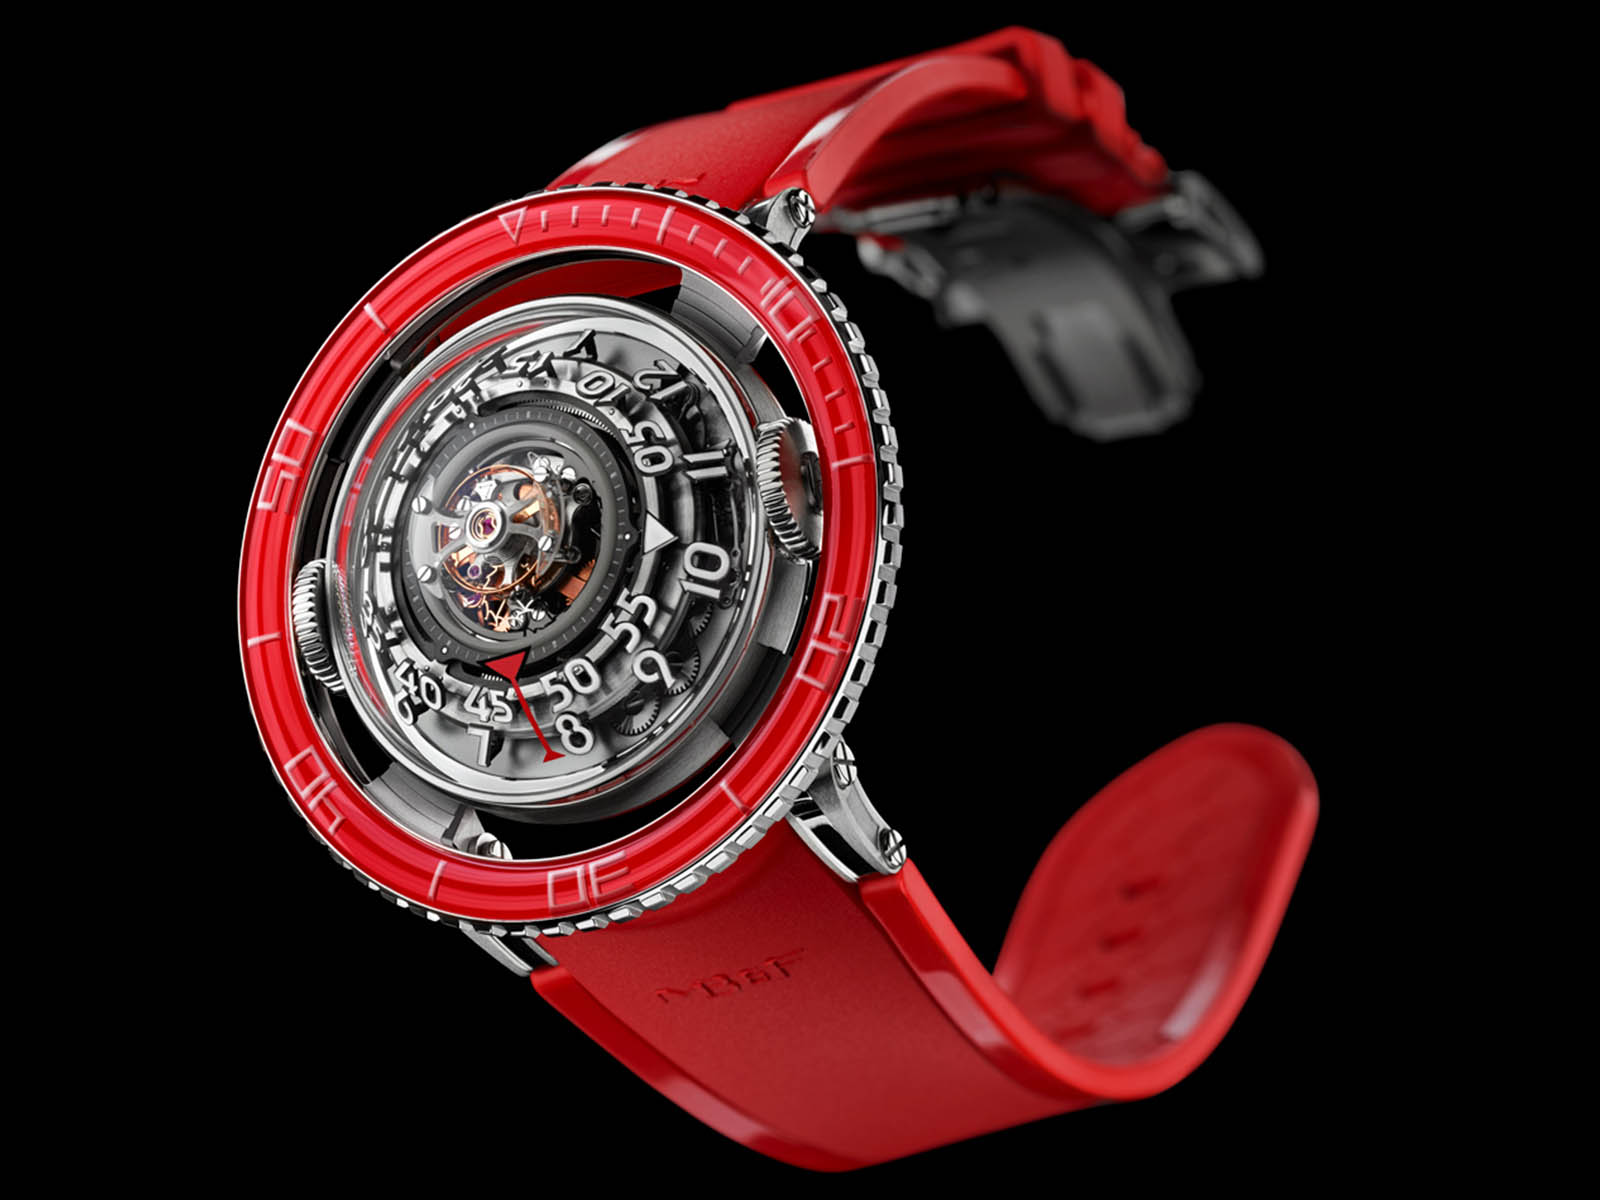 70-pbl-b-mb-f-hm7-aquapod-platinum-red-2.jpg